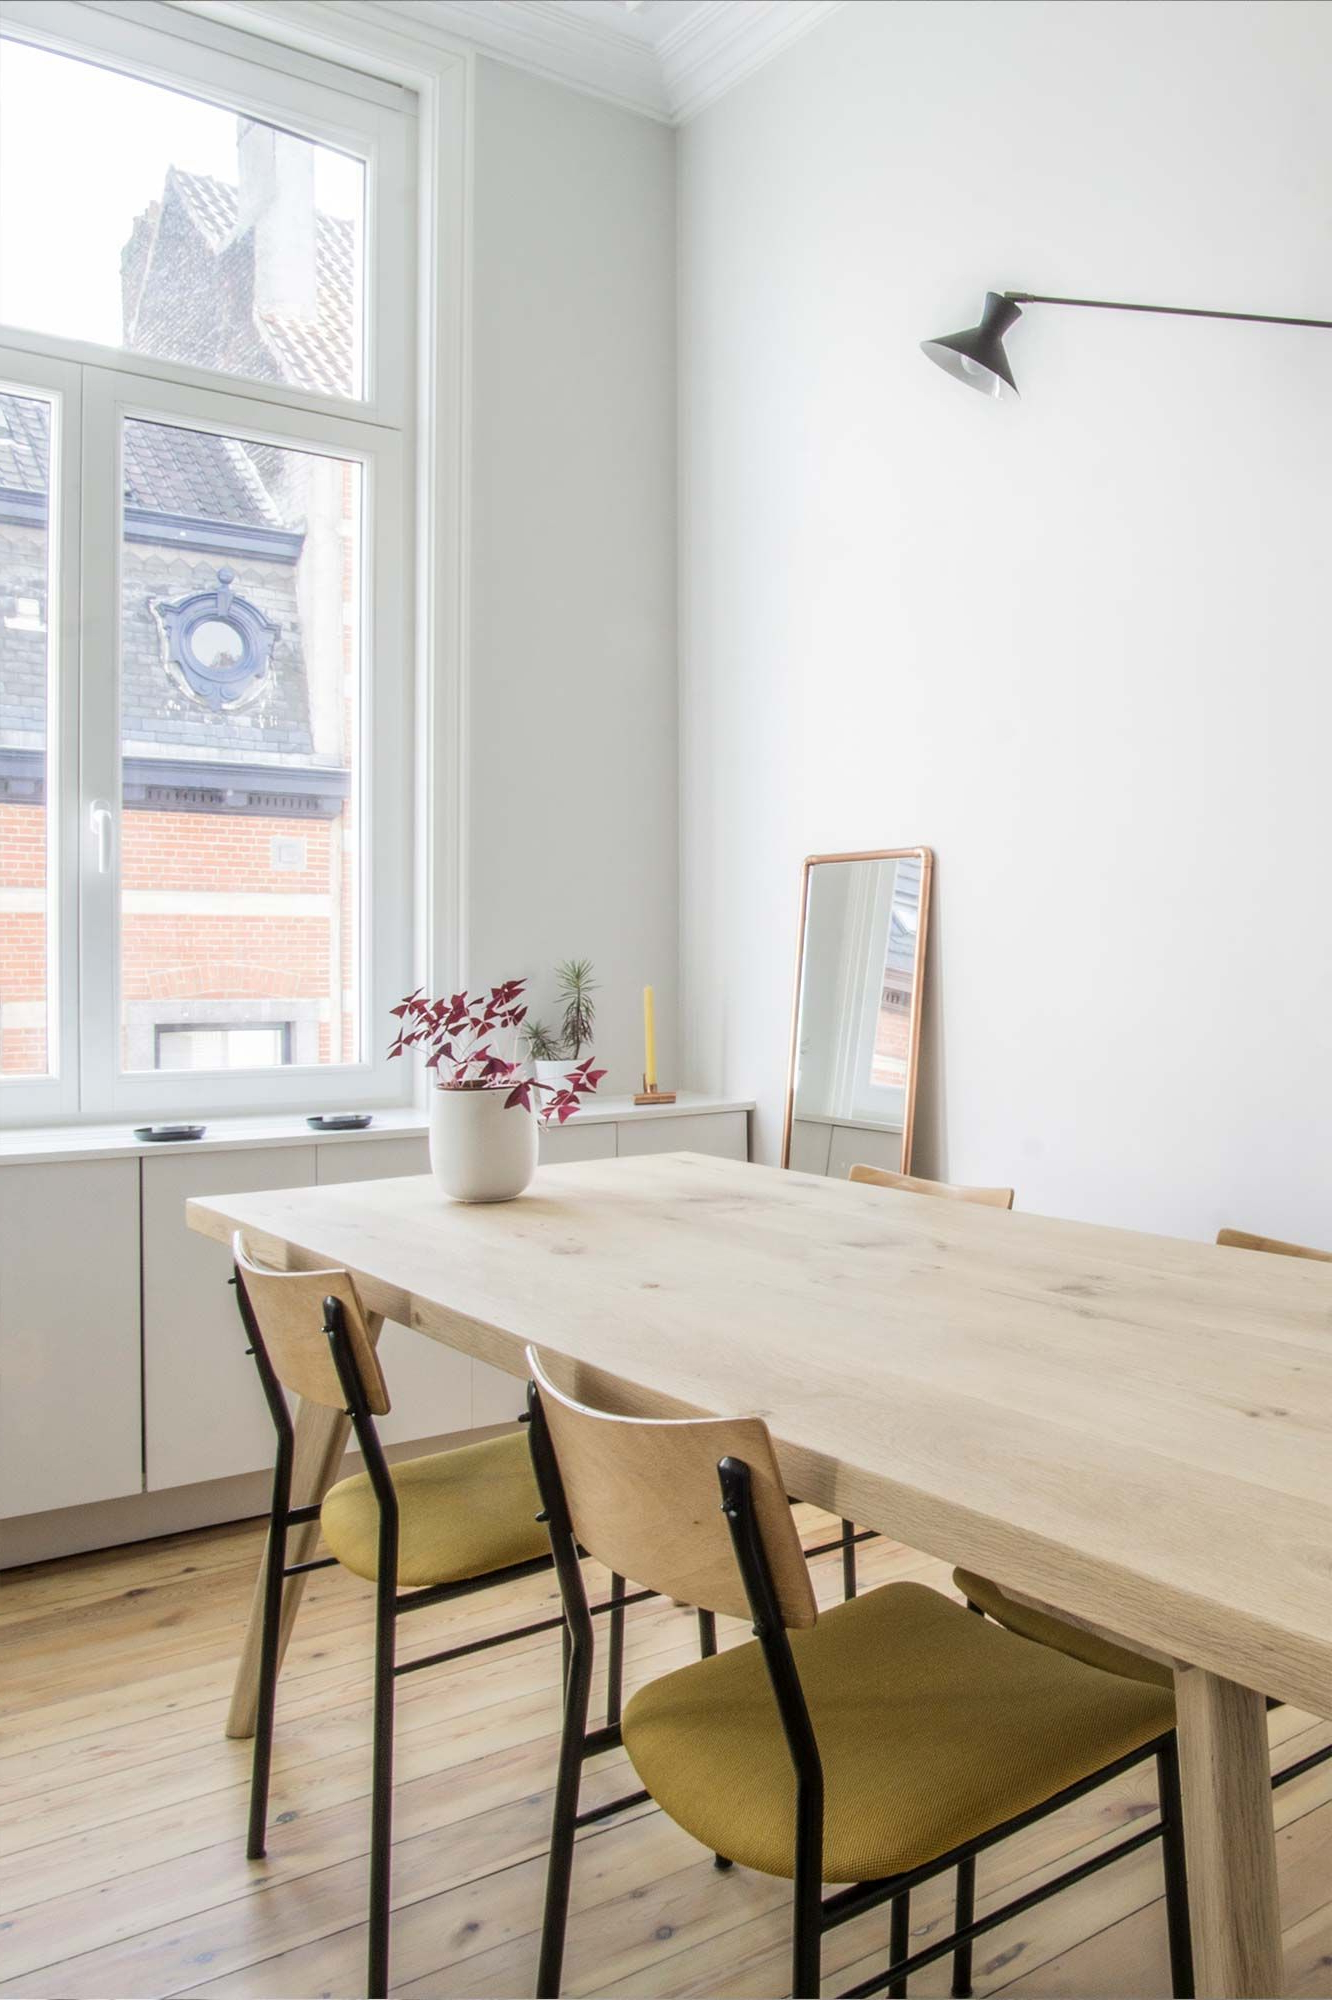 Brussels Reclaimed European Barnwood Dining Tables inside Well-known Chic & Simple: Vintage Meets Modern Dining Room